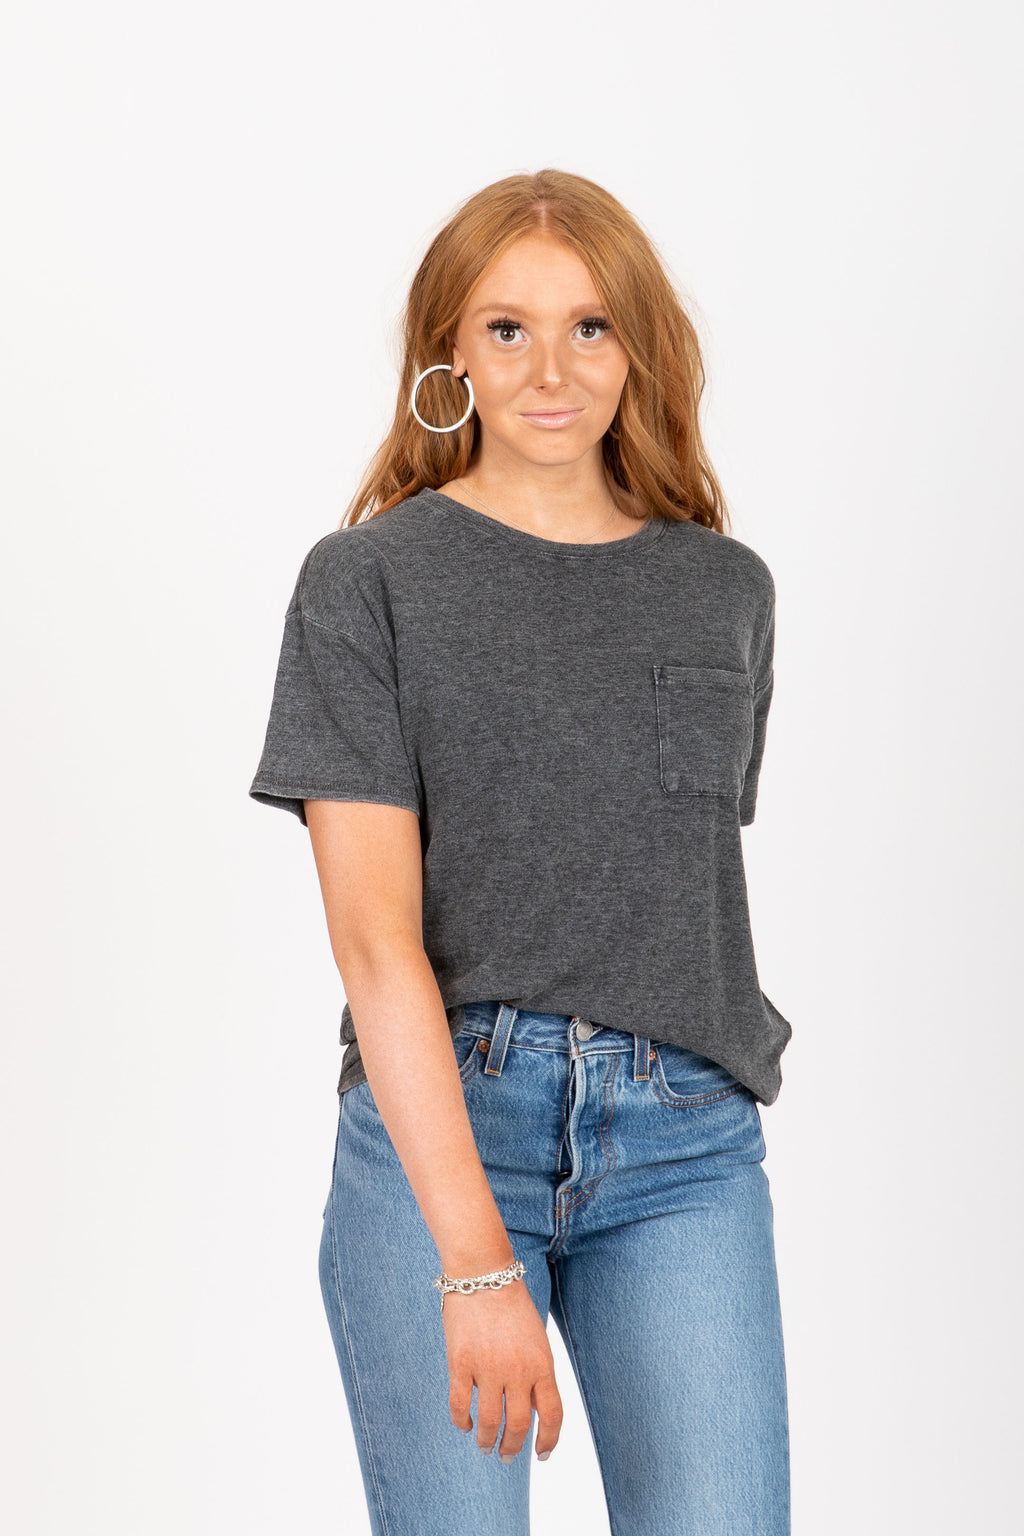 The Denison Pocket Tee in Charcoal